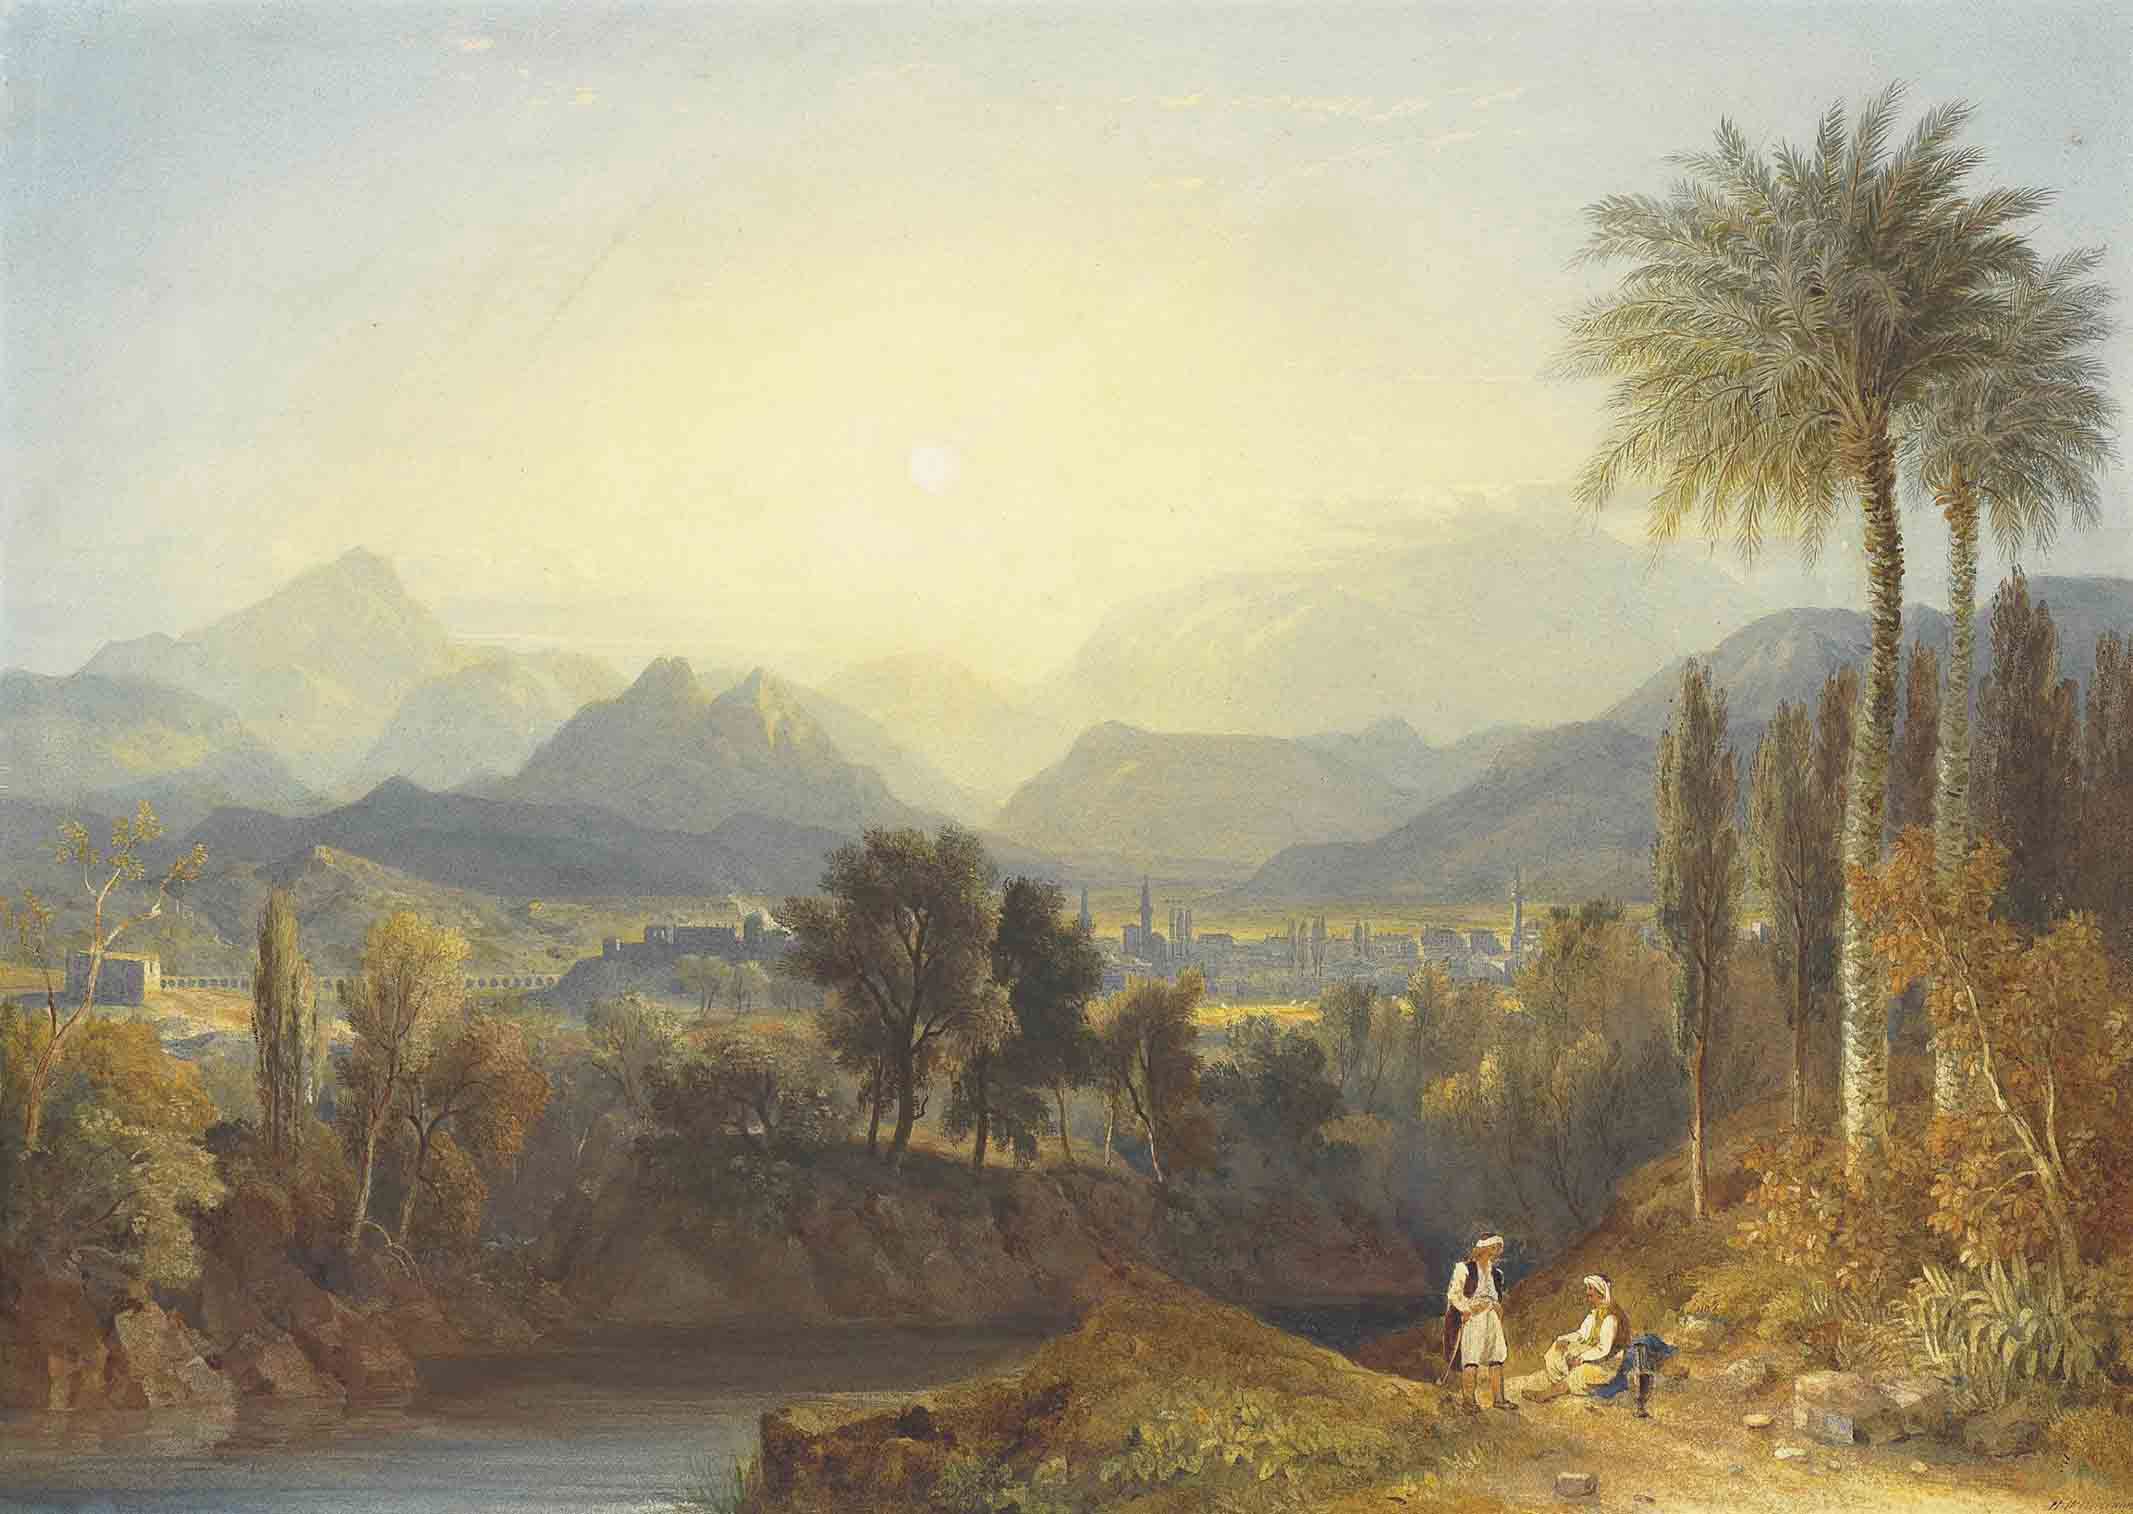 An extensive view of Thebes, Greece